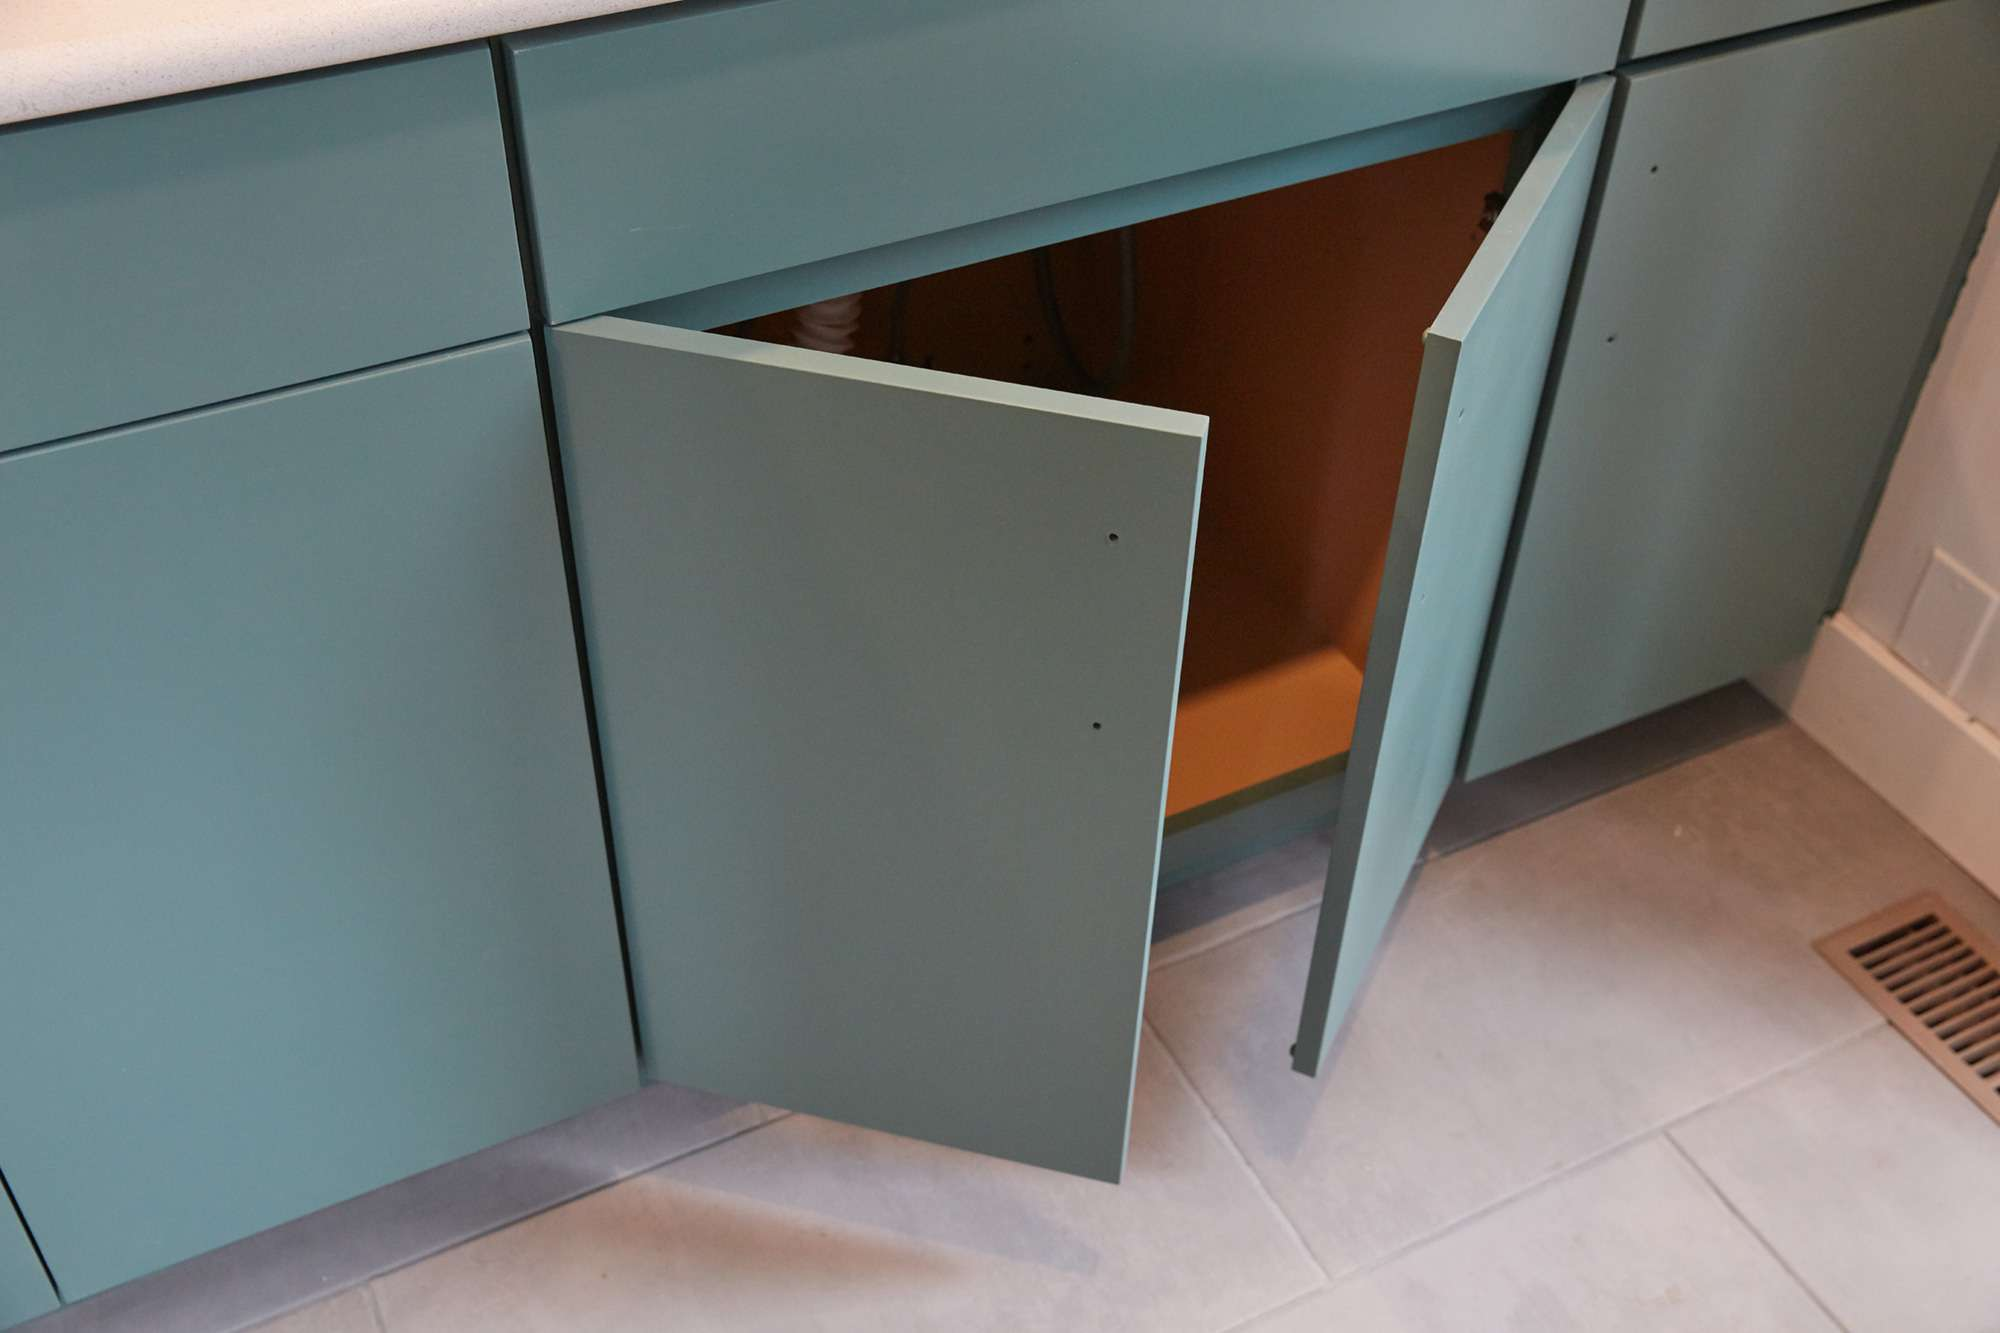 Newly installed mint green kitchen cabinets with doors open